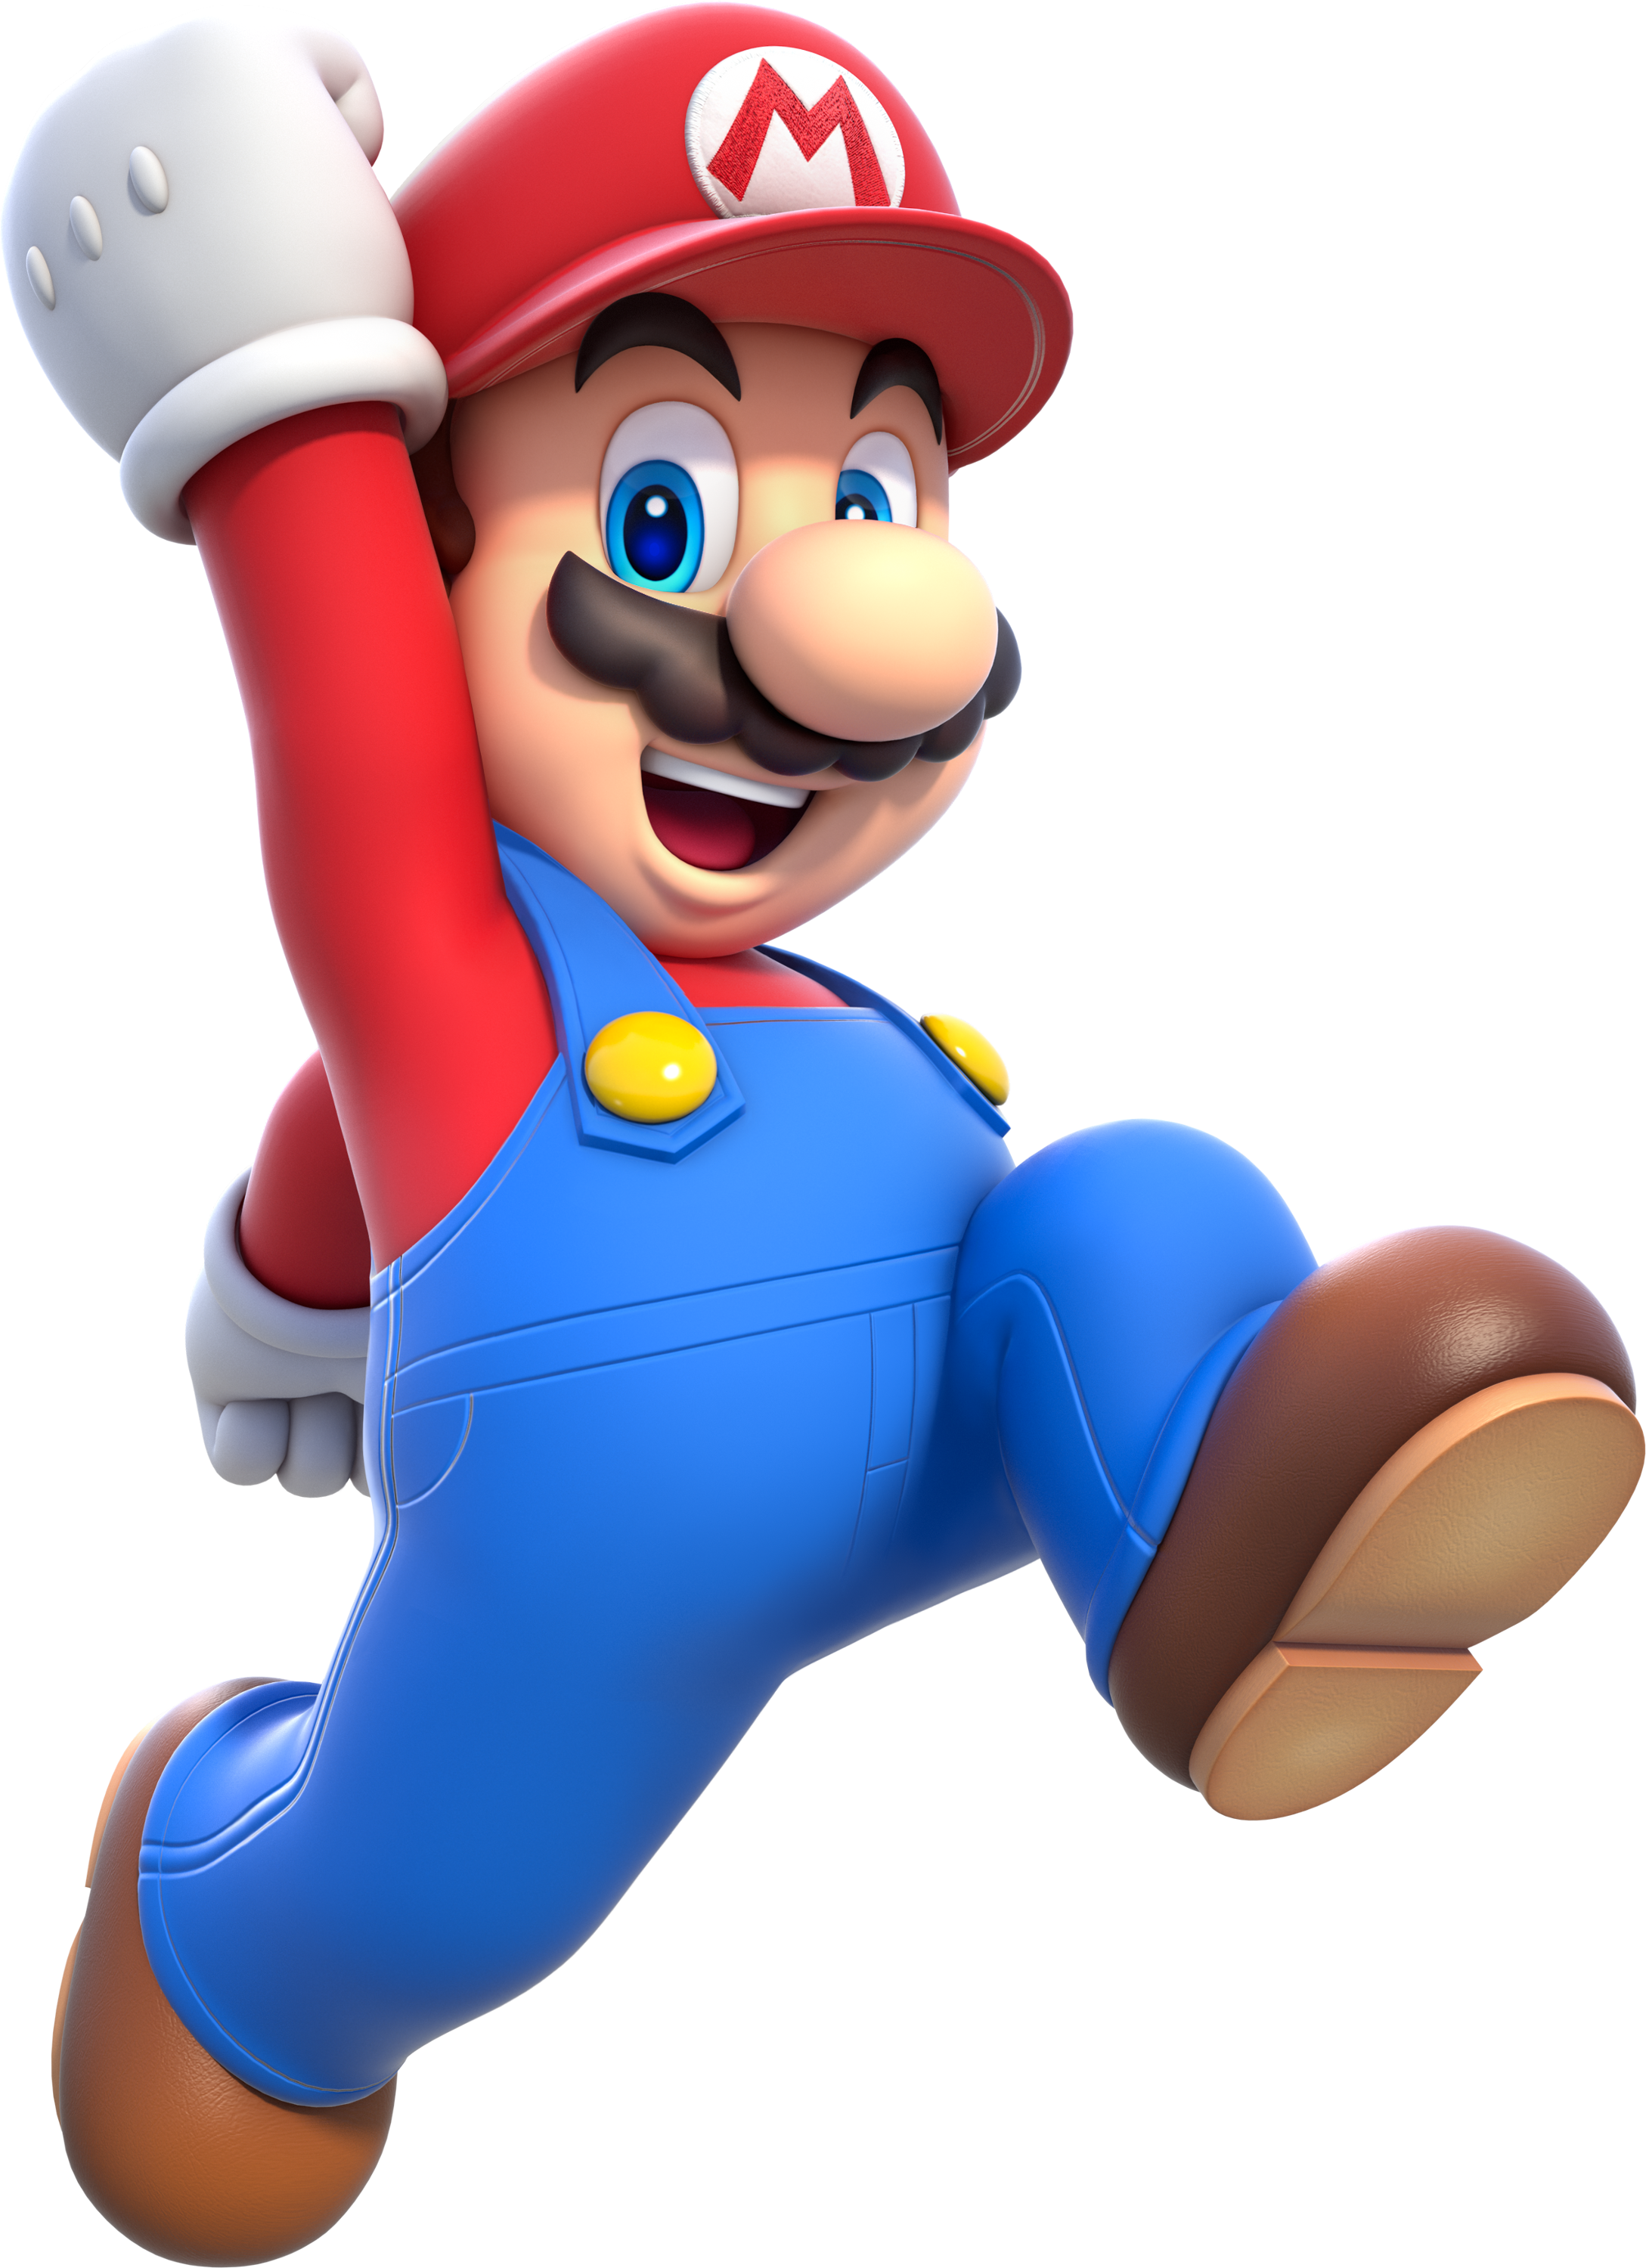 fun facts about super mario gamehouse #11651